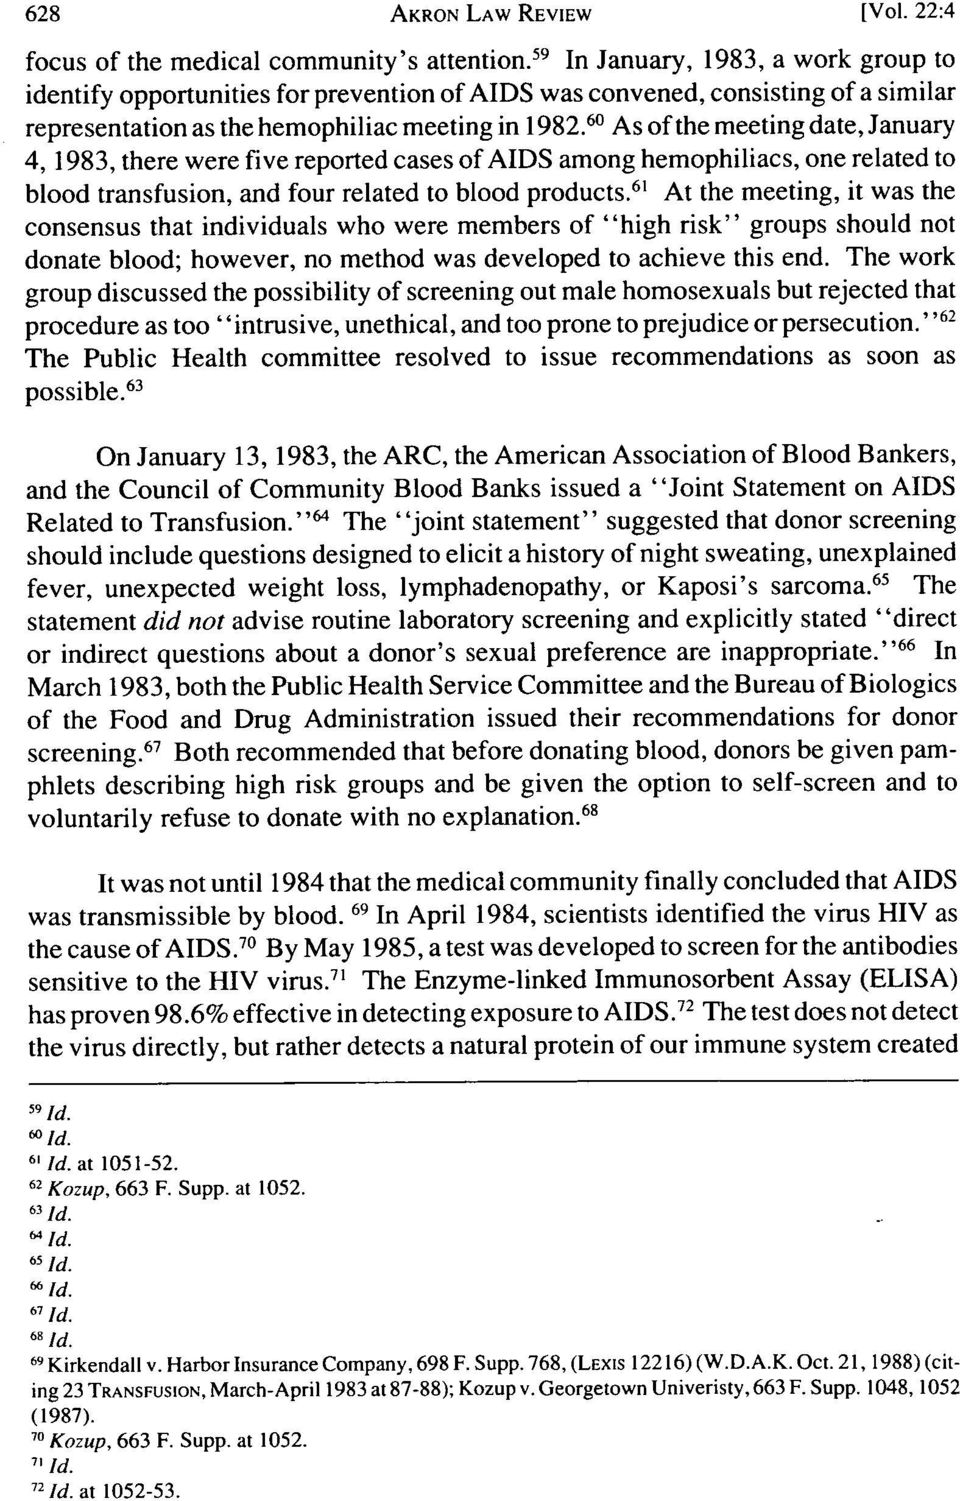 60 As of the meeting date, January 4, 1983, there were five reported cases of AIDS among hemophiliacs, one related to blood transfusion, and four related to blood products.